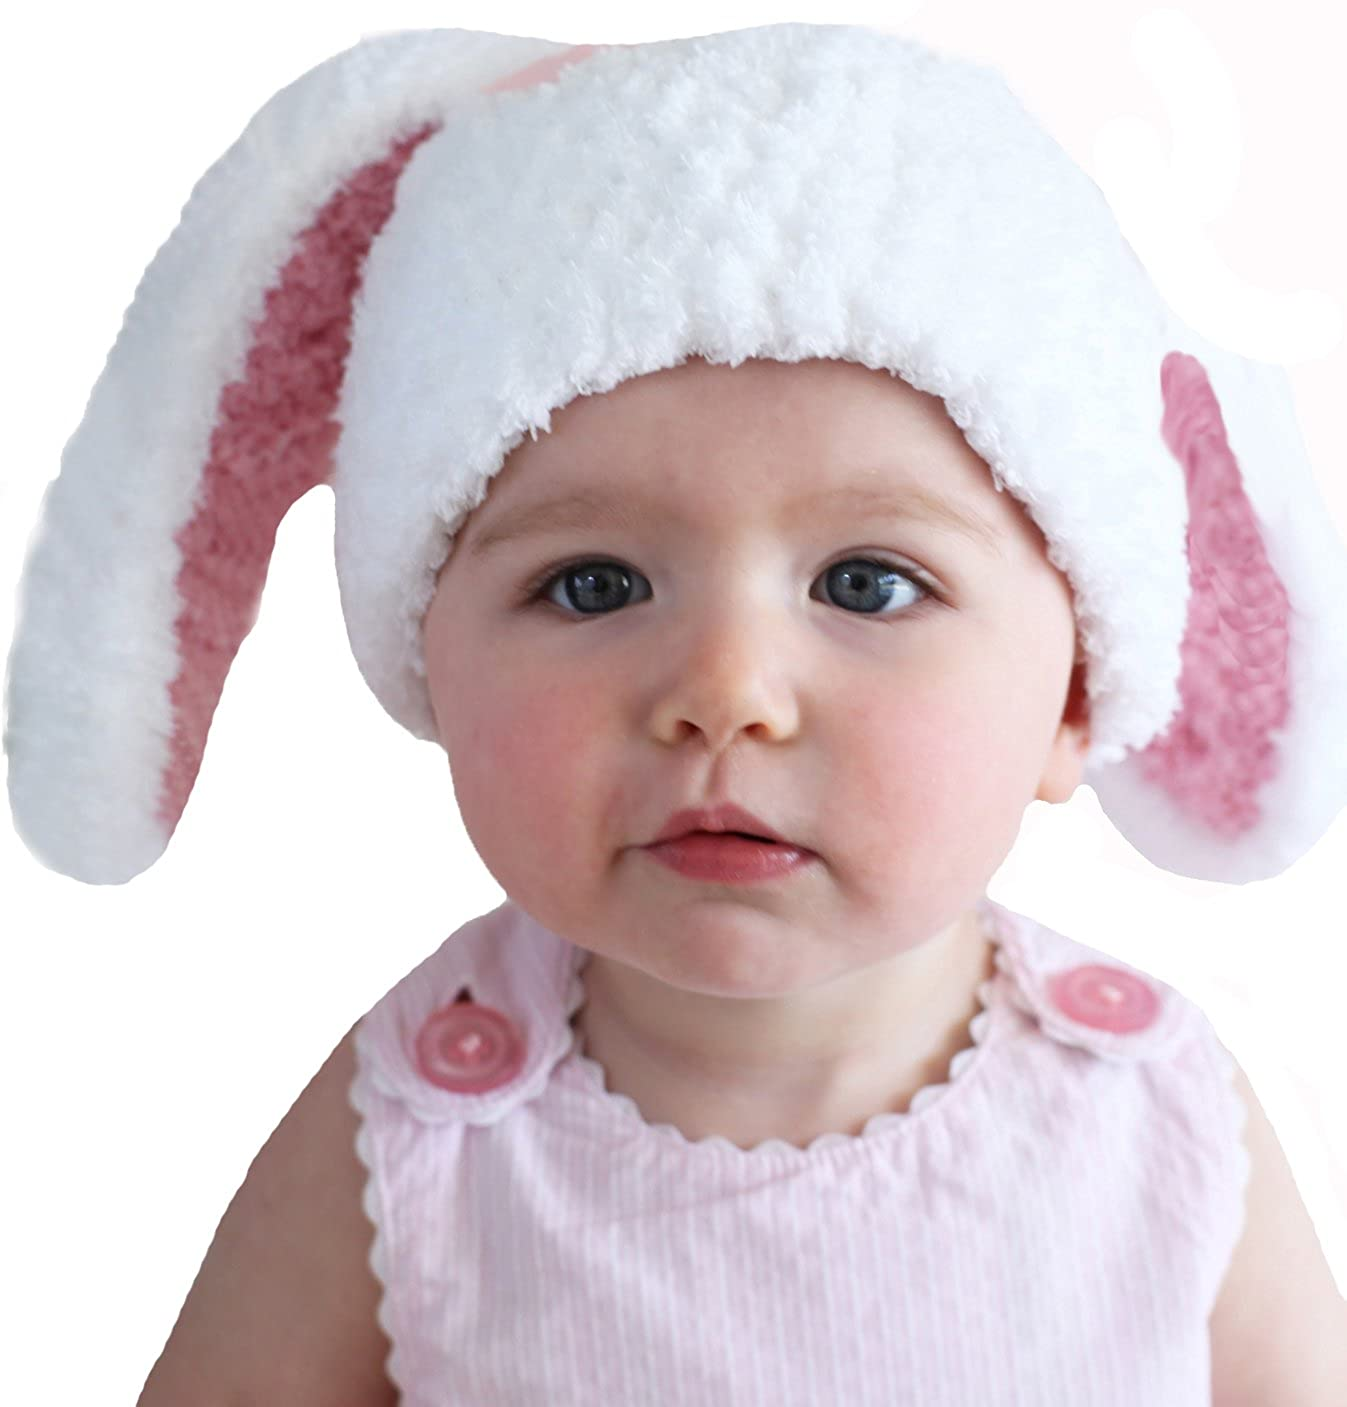 9944b8a0460ab Amazon.com  Melondipity Girls Floppy Ear Bunny Baby Hat - Organic White  Premium Beanie  Infant And Toddler Hats  Clothing